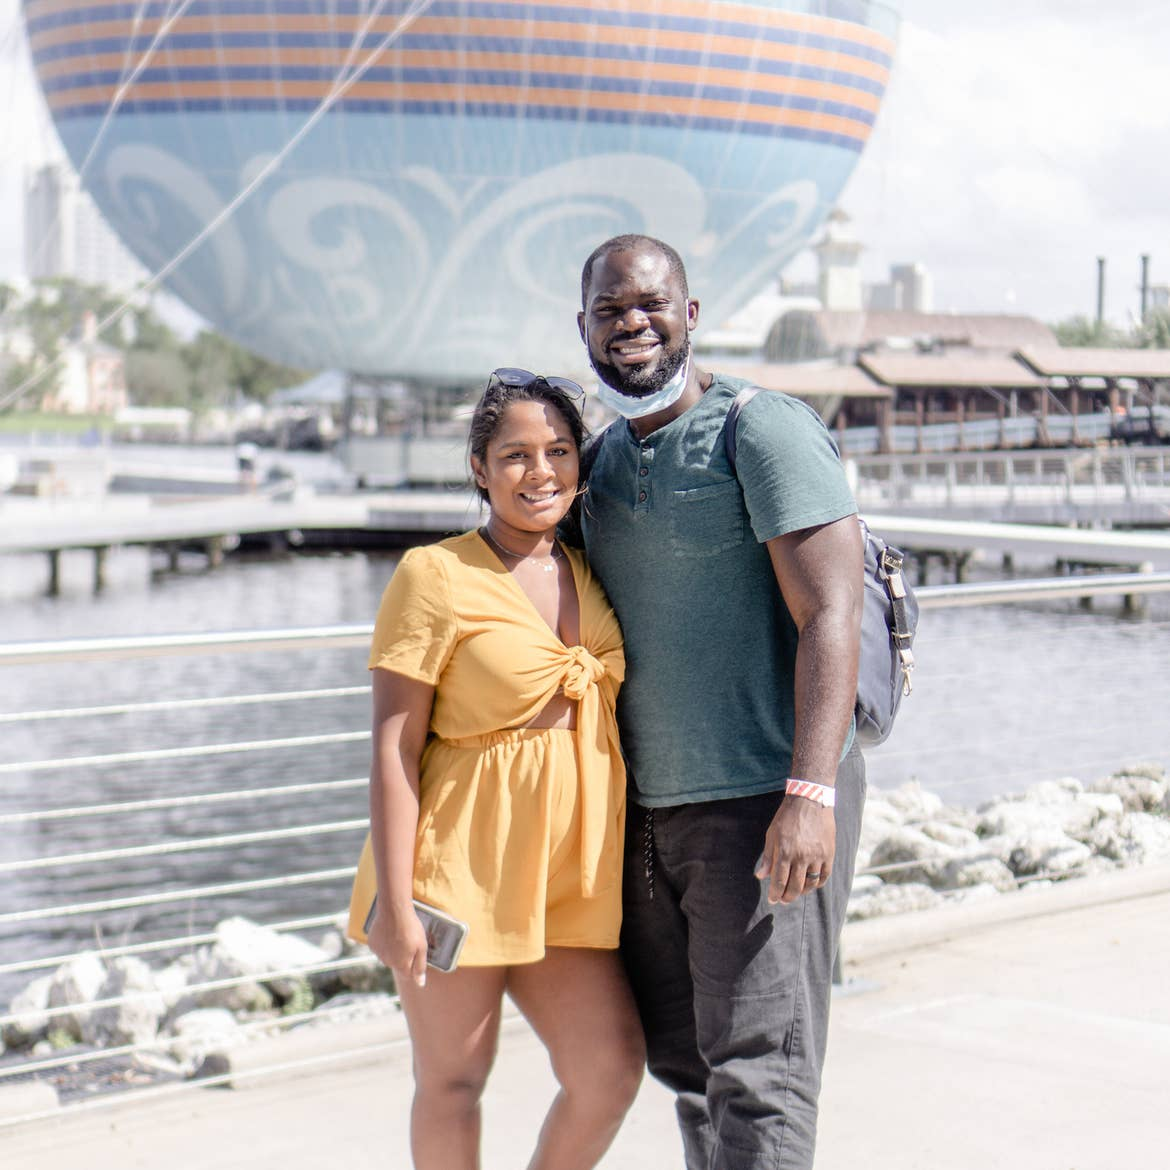 Author, Kimberly Gelin (left), poses with her husband in front of the 'Aerophile – The World Leader in Balloon Flight' at Disney Springs in Walt Disney World Resort.